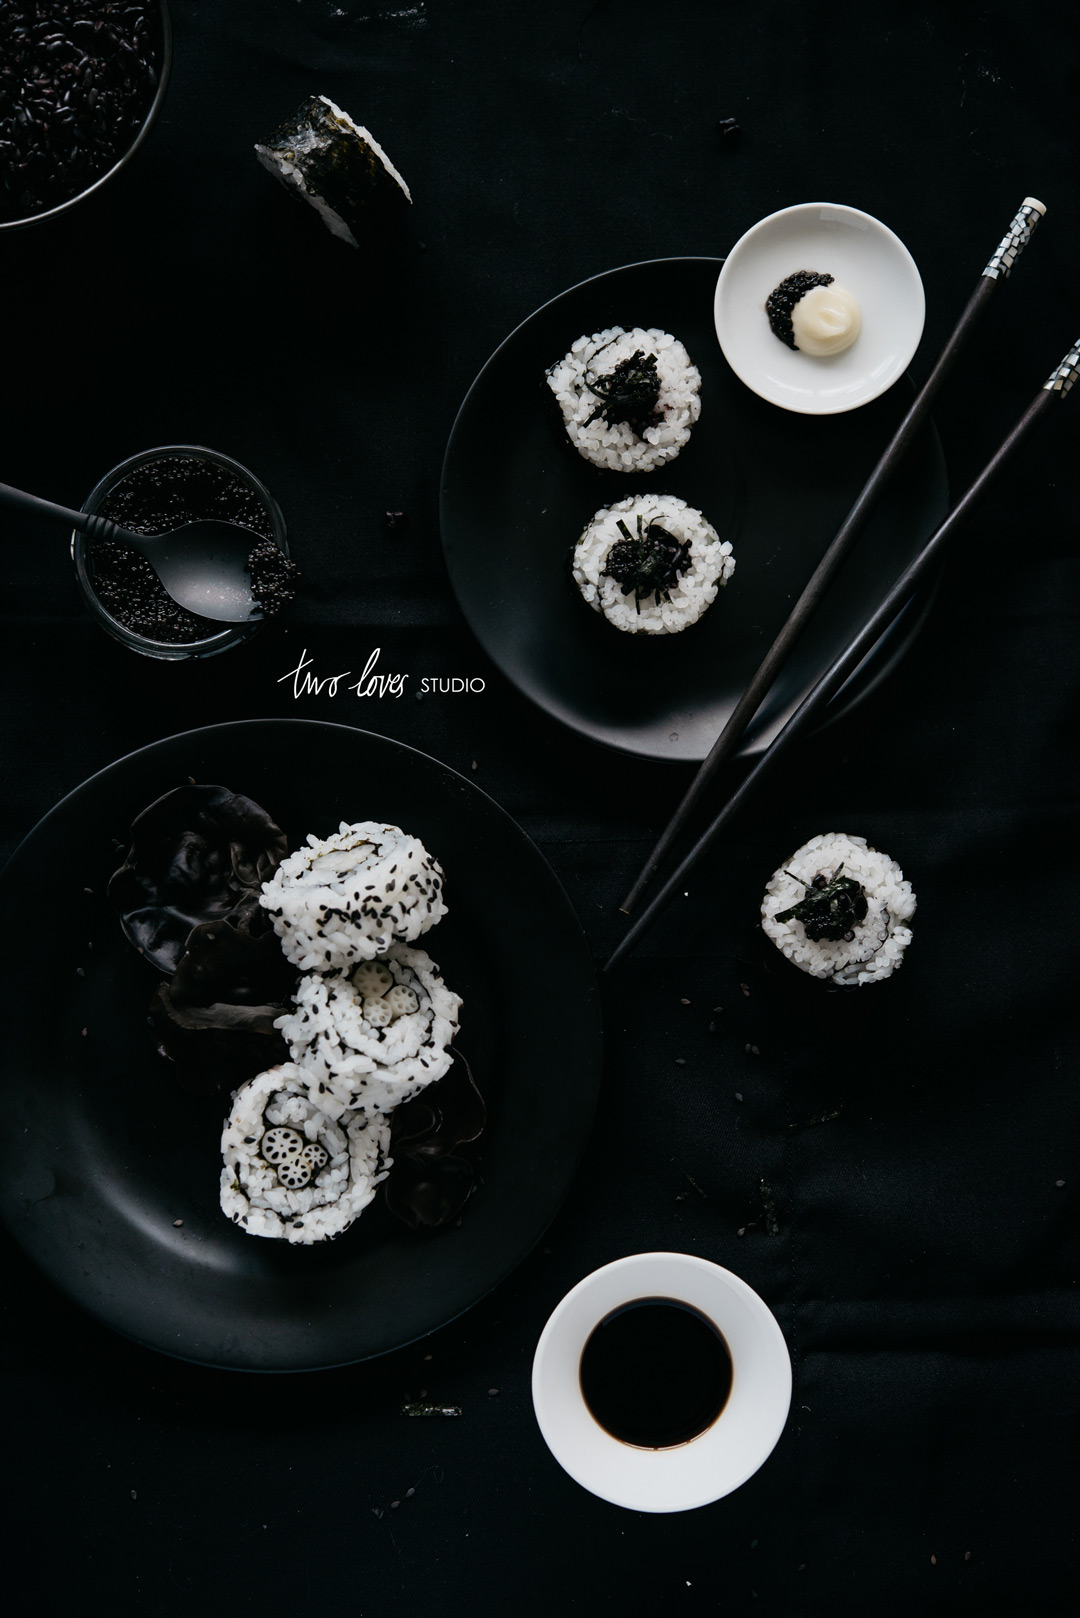 Two Loves Studio Black White Food Photography Sushi